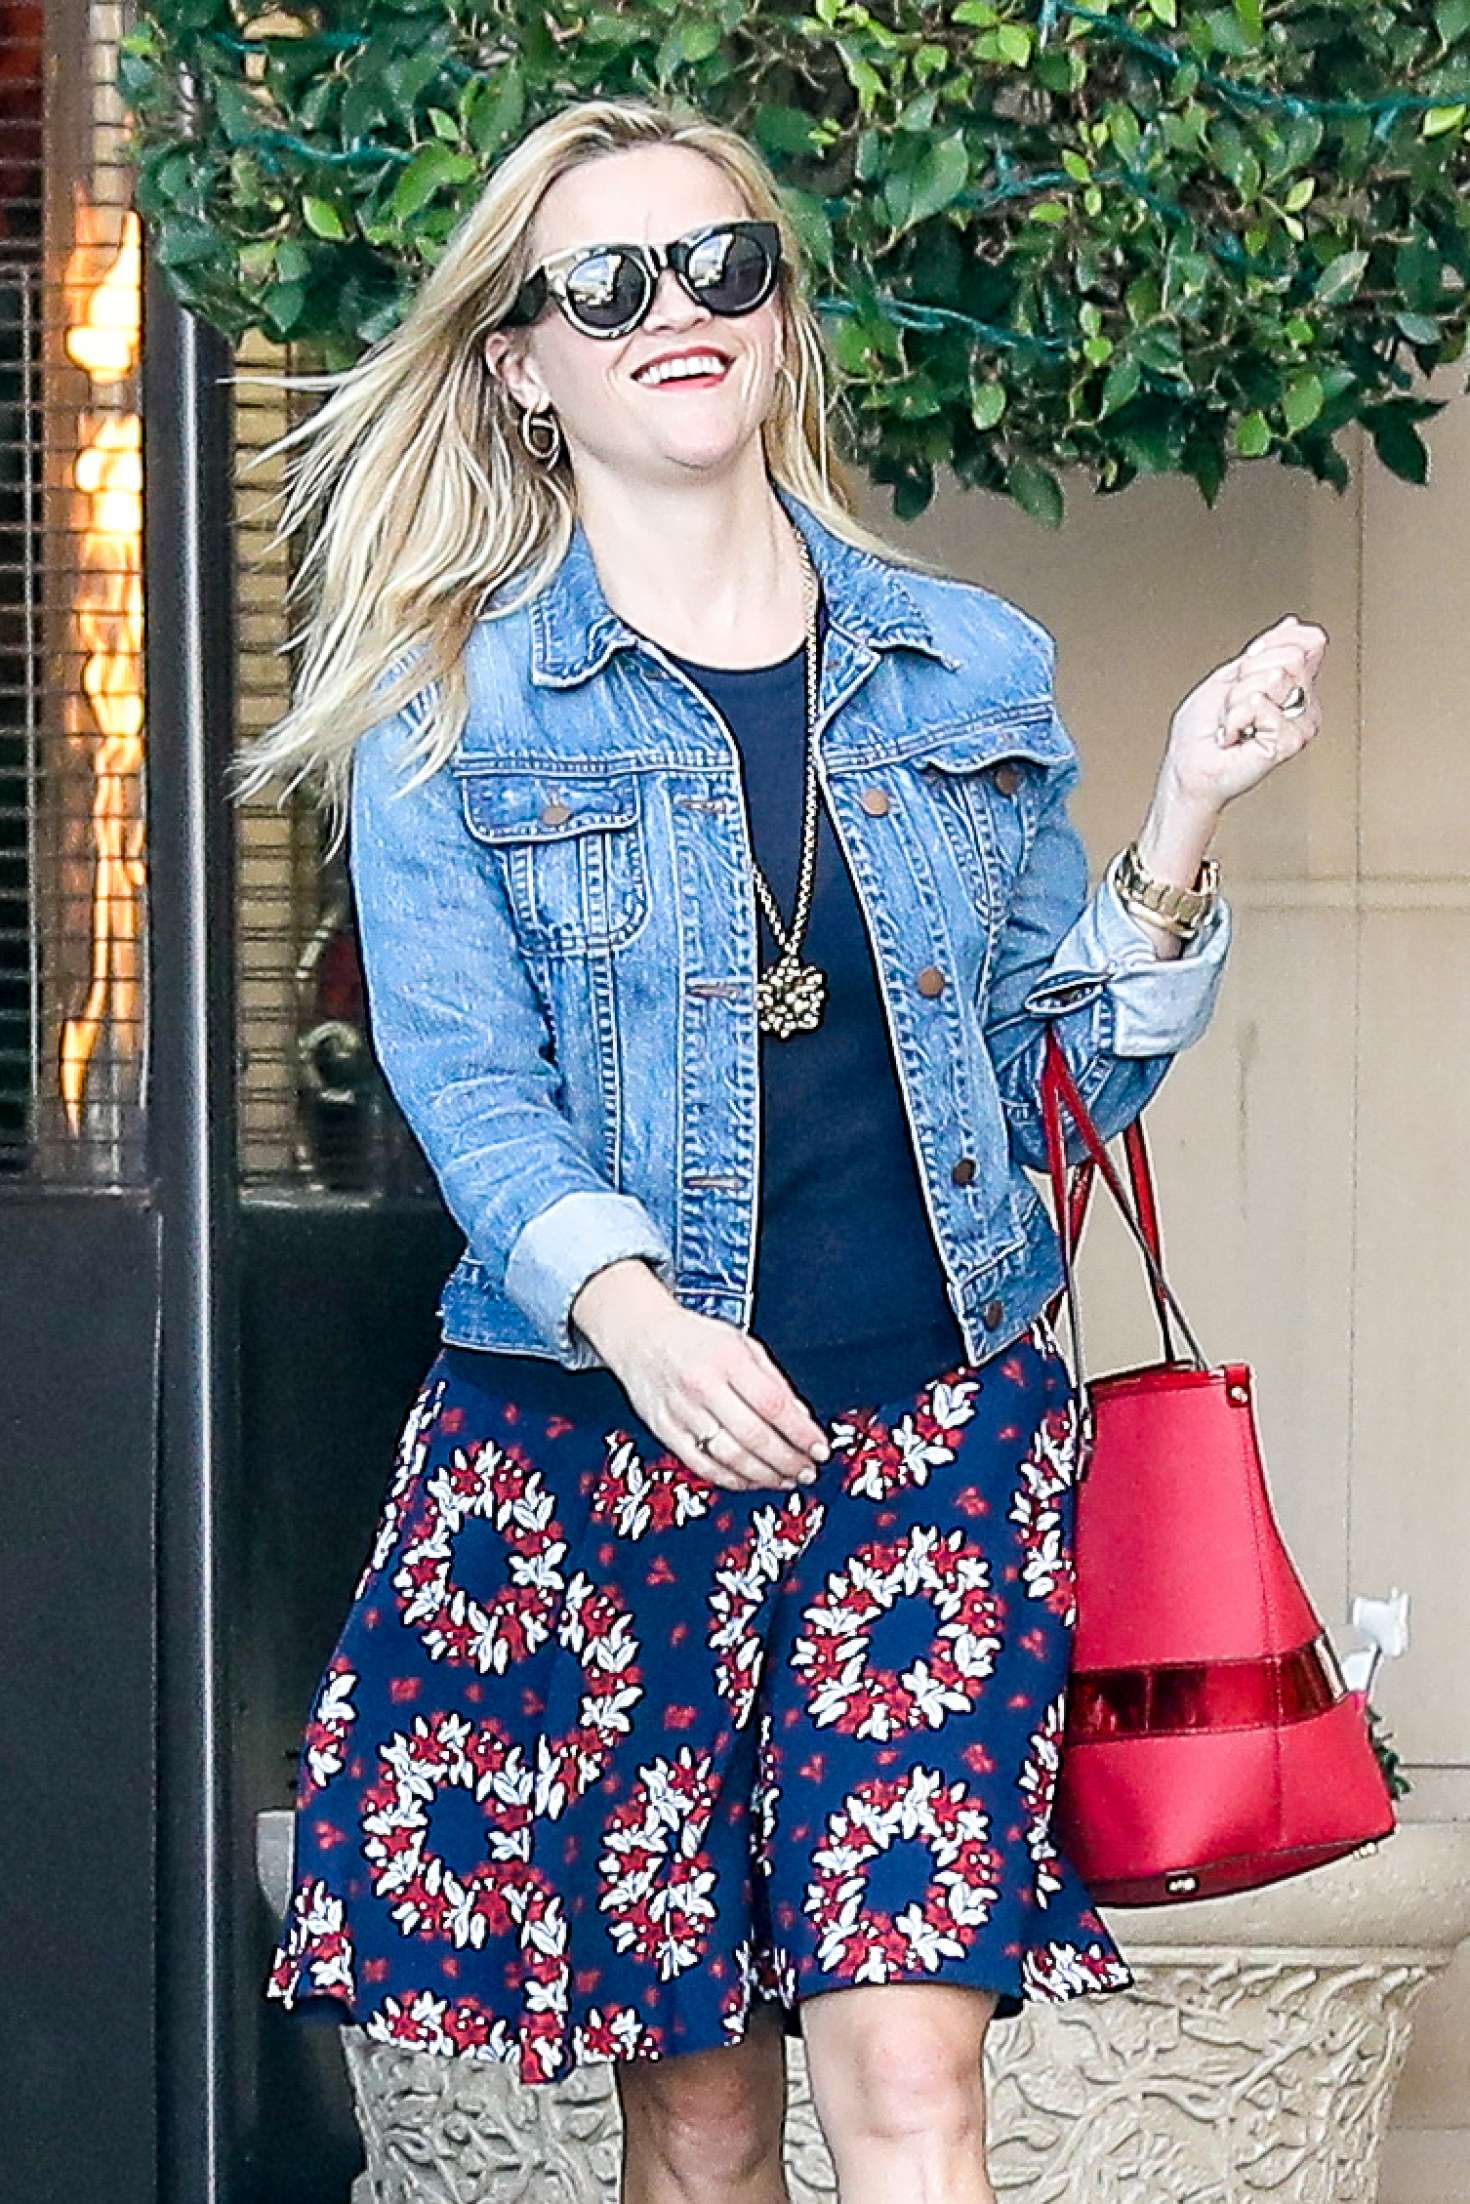 Reese Witherspoon at Christmas shopping in Beverly Hills